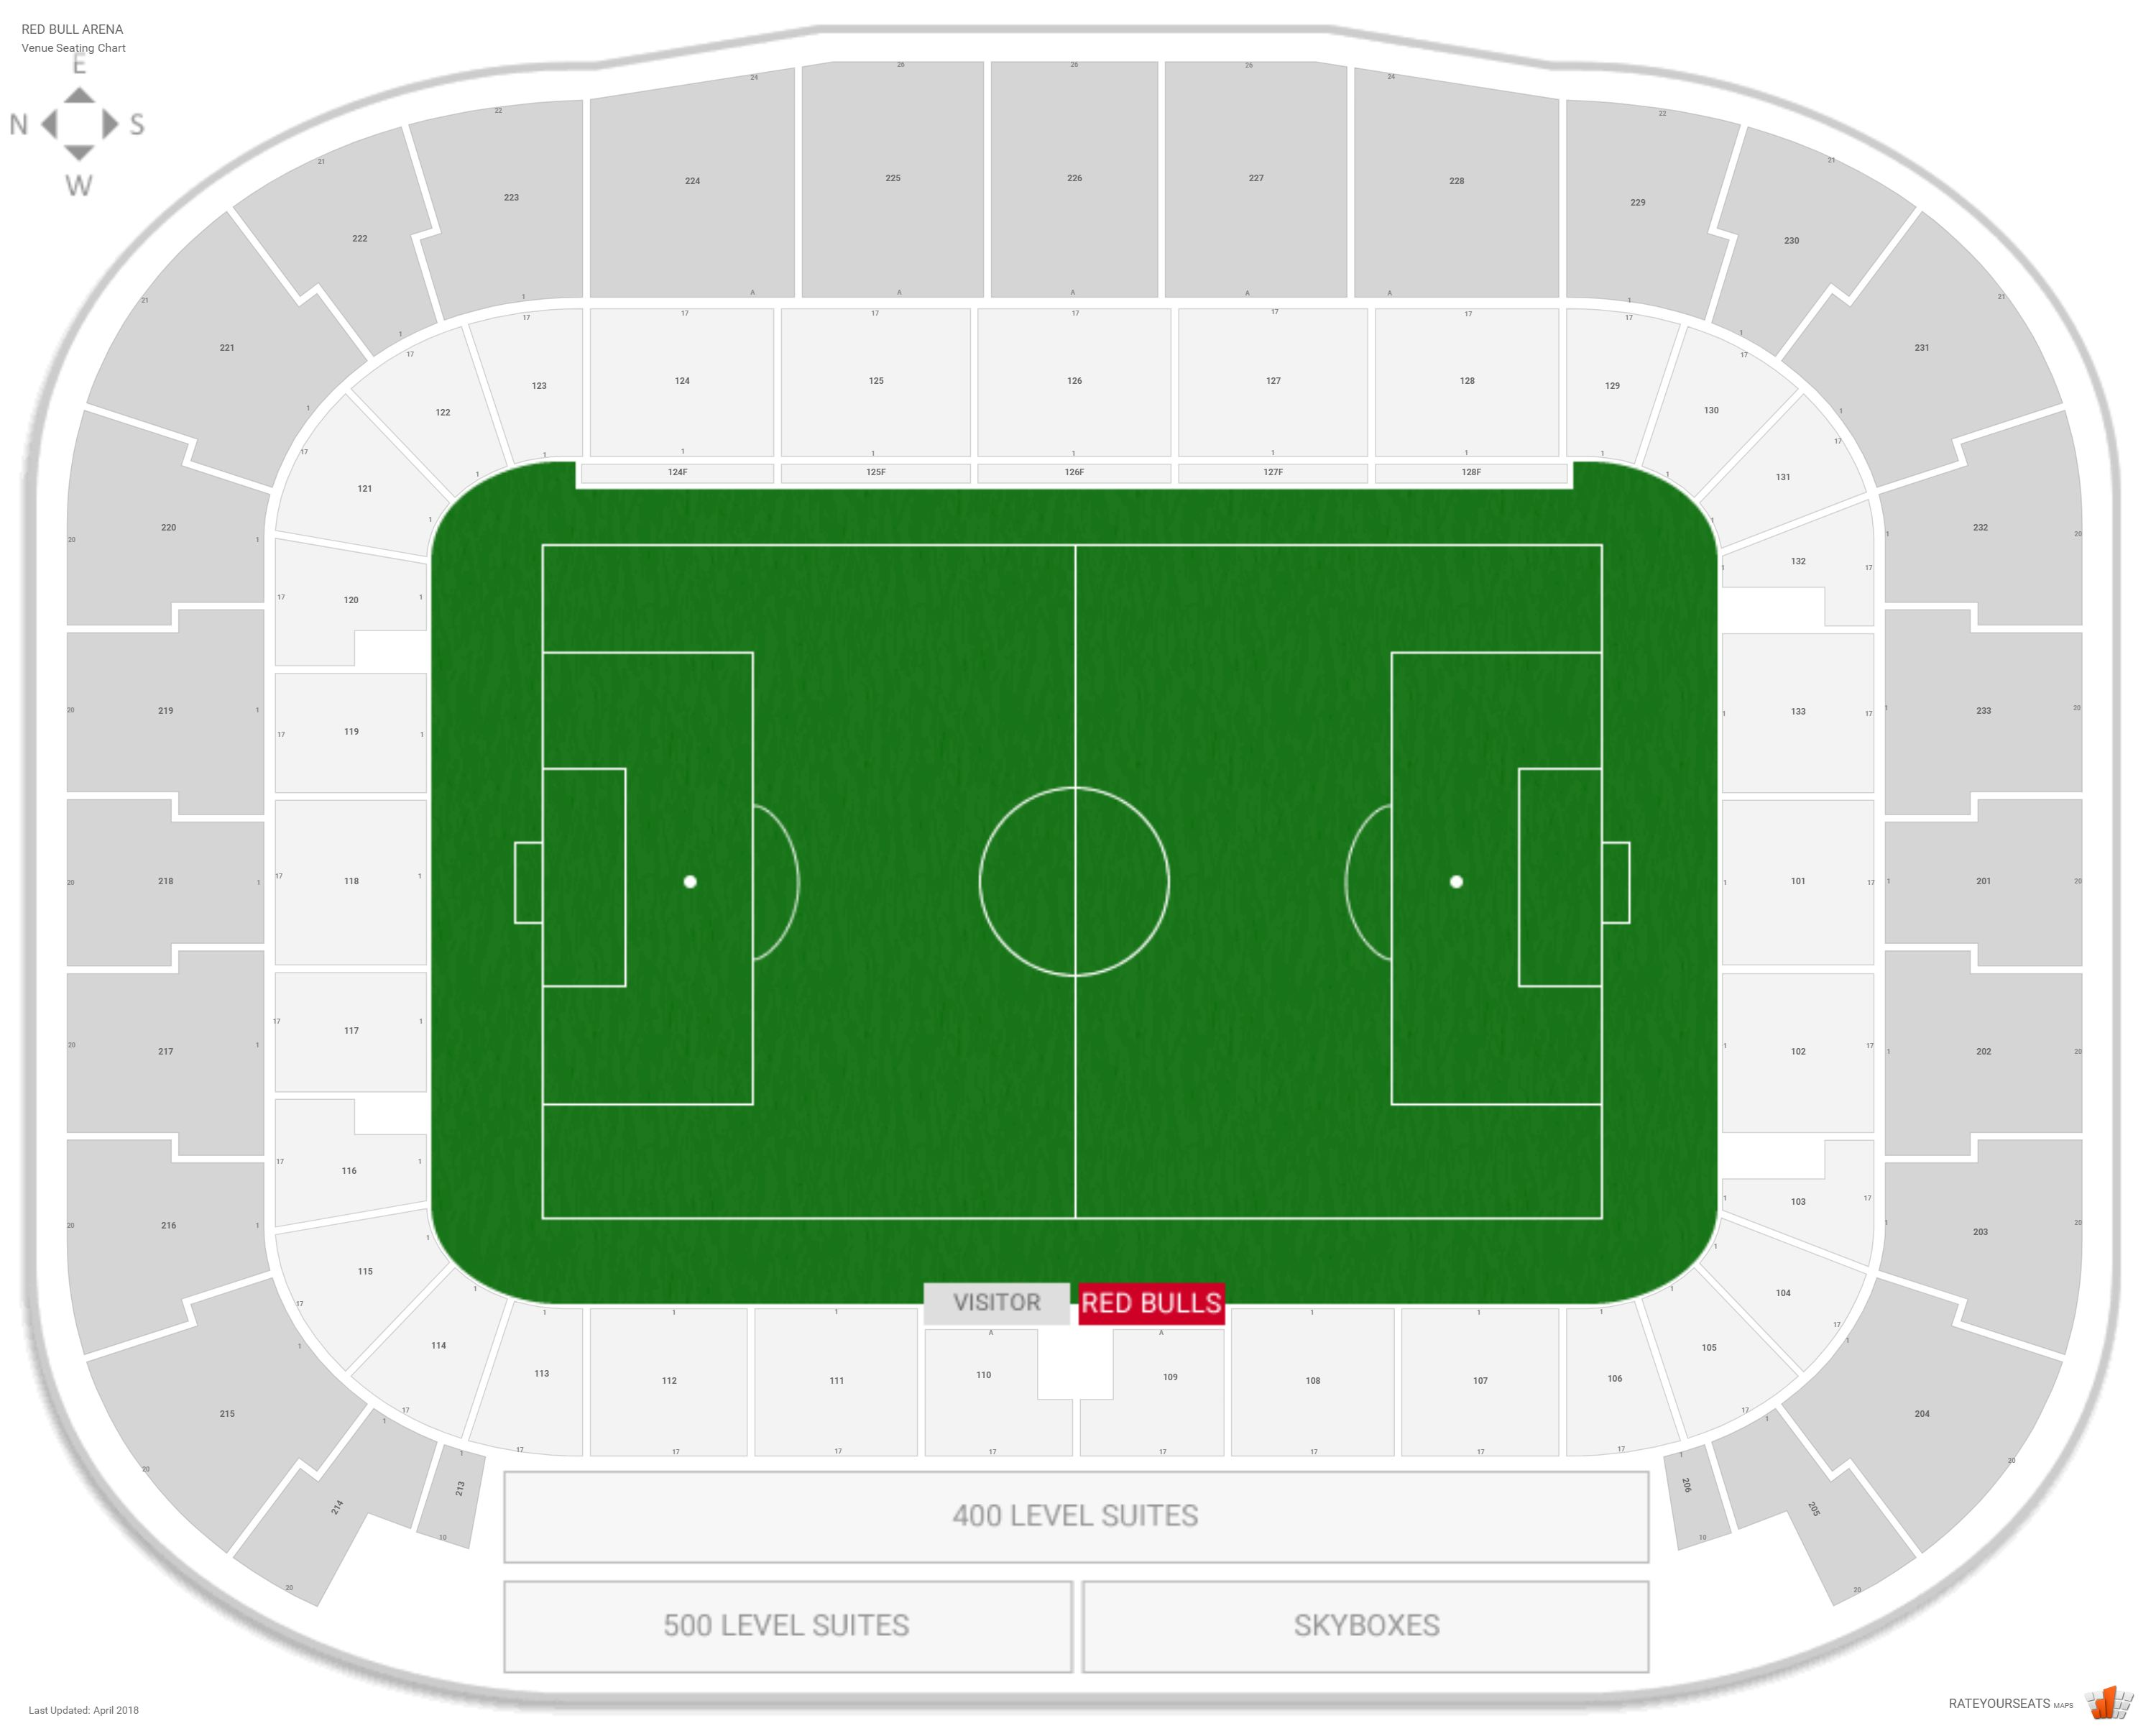 Red bull arena seating guide rateyourseats com